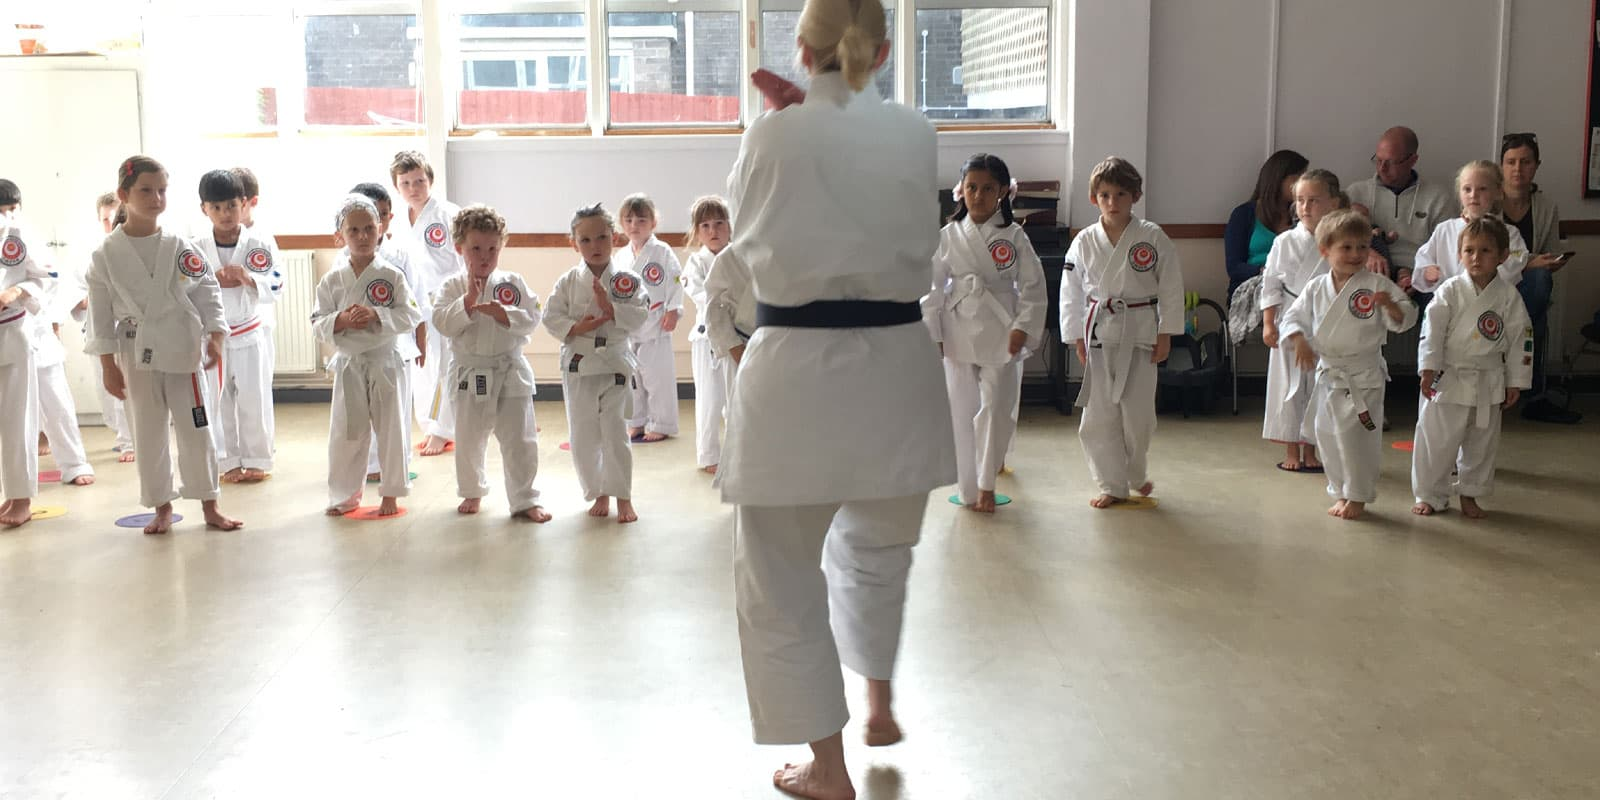 Small childrens Karate Classes Age 3-4 years